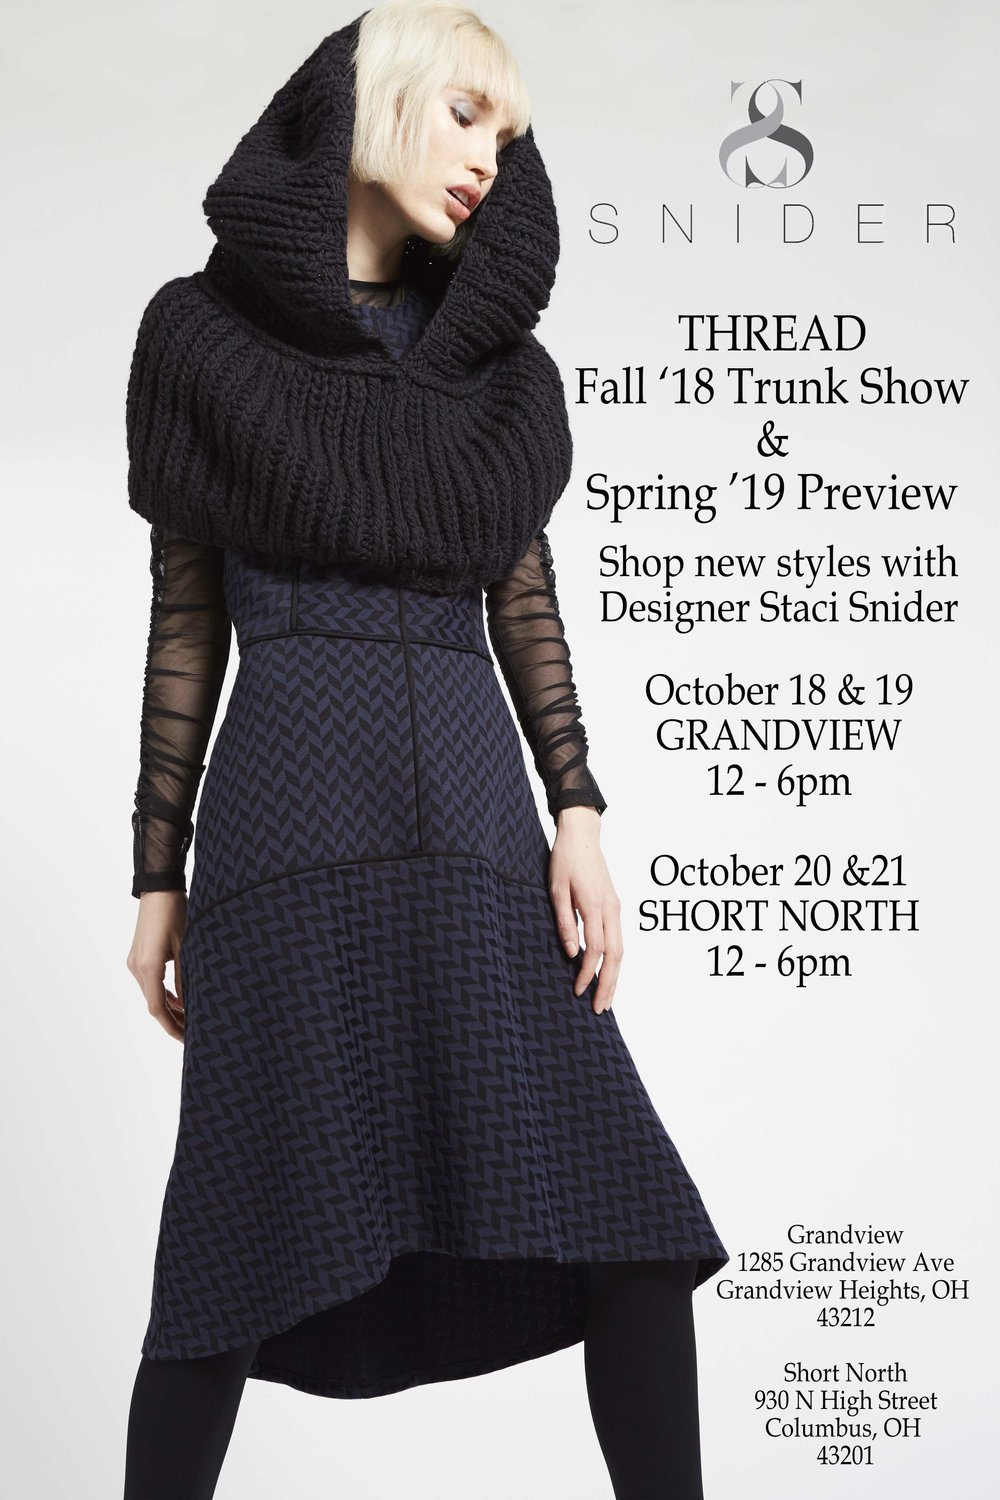 THREADTRUNKSHOW.jpeg